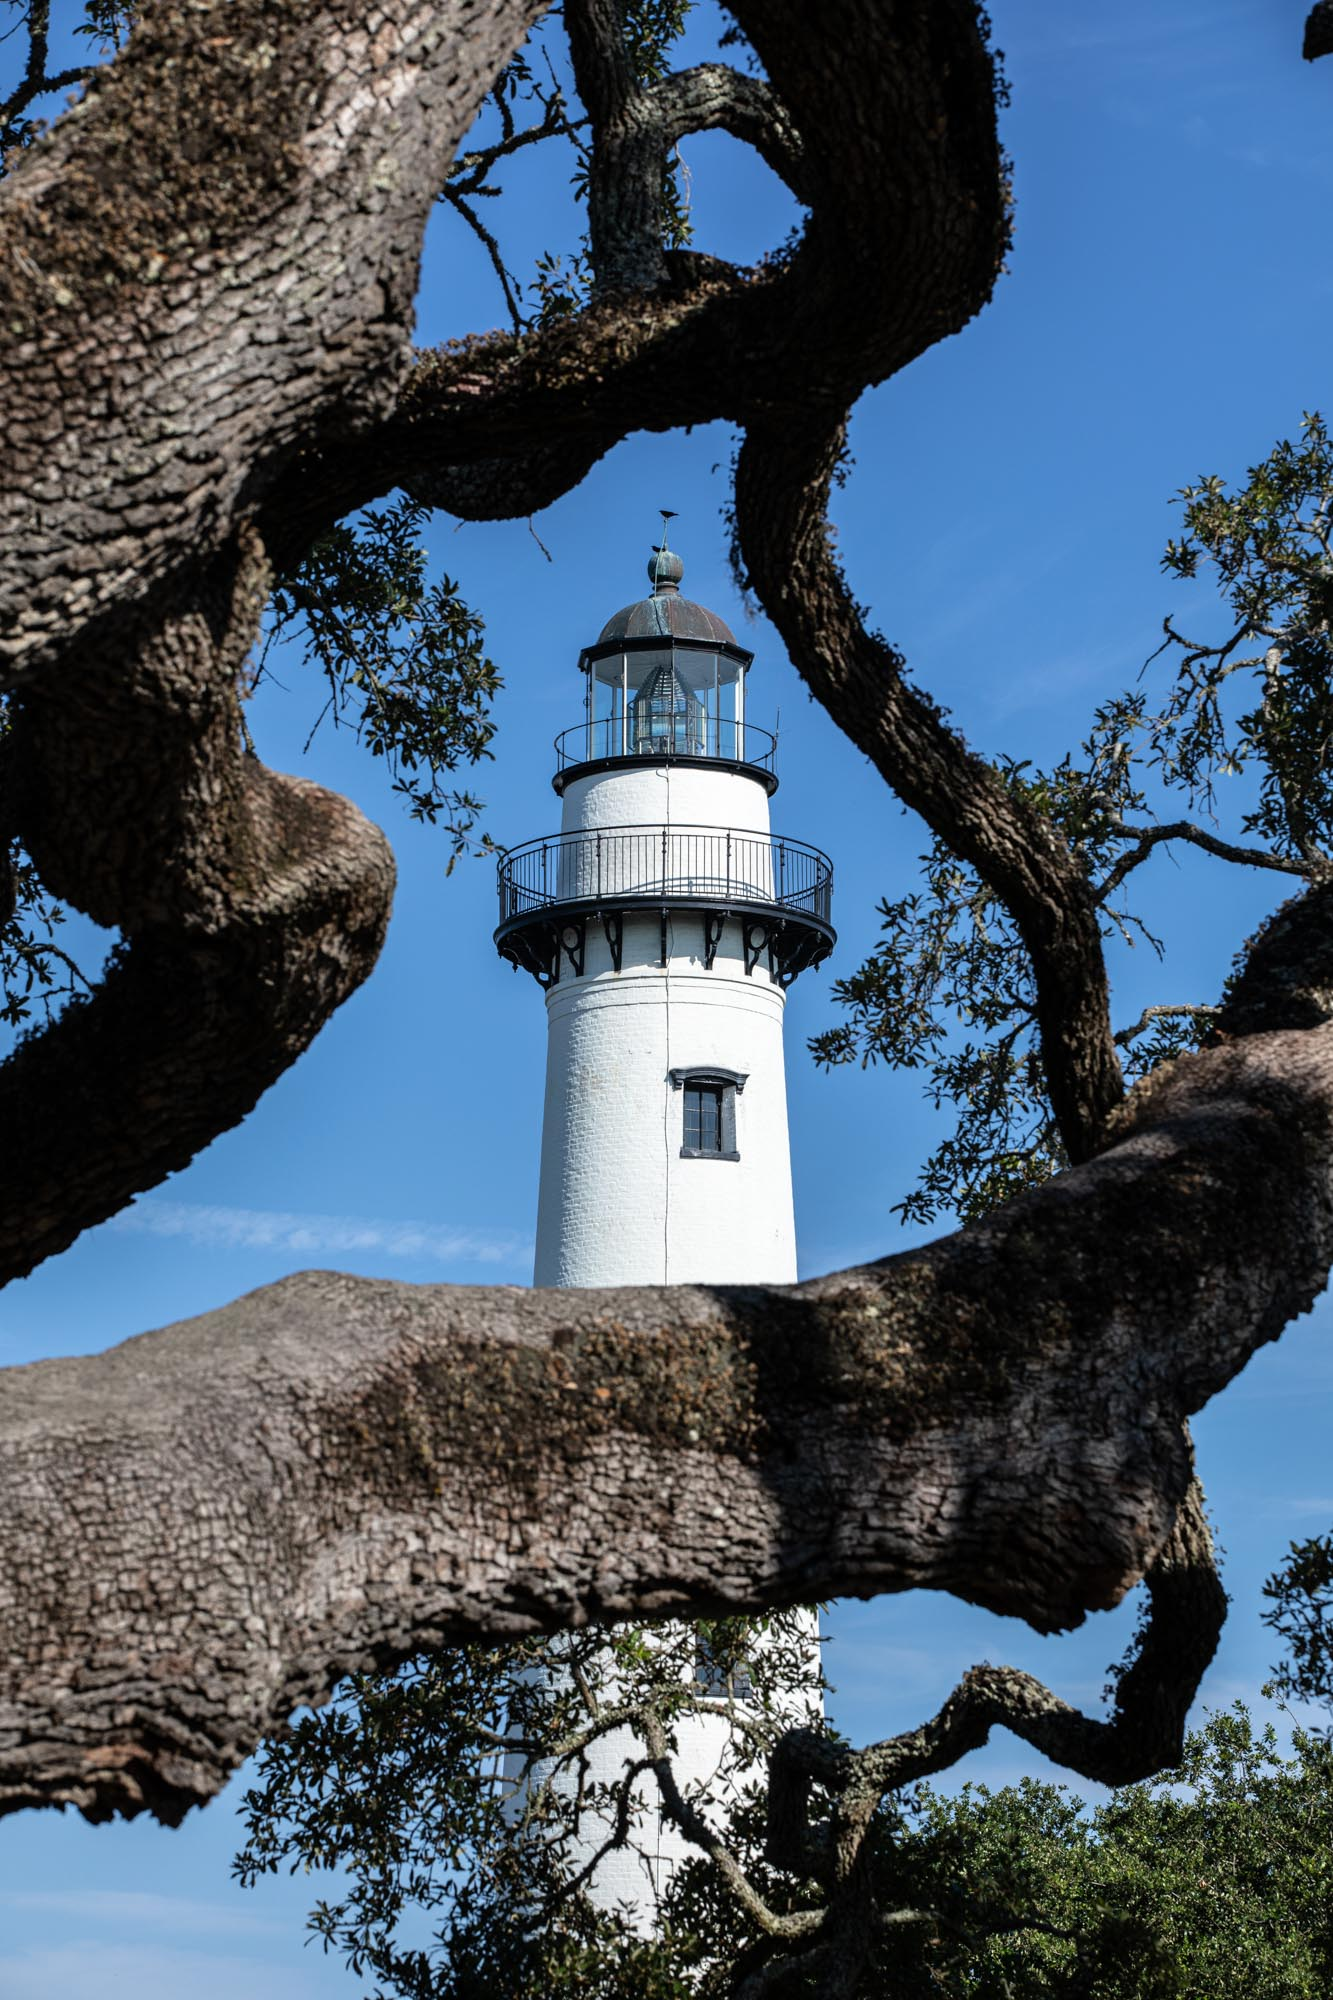 St. Simons lighthouse seen through the branches of a live oak tree.